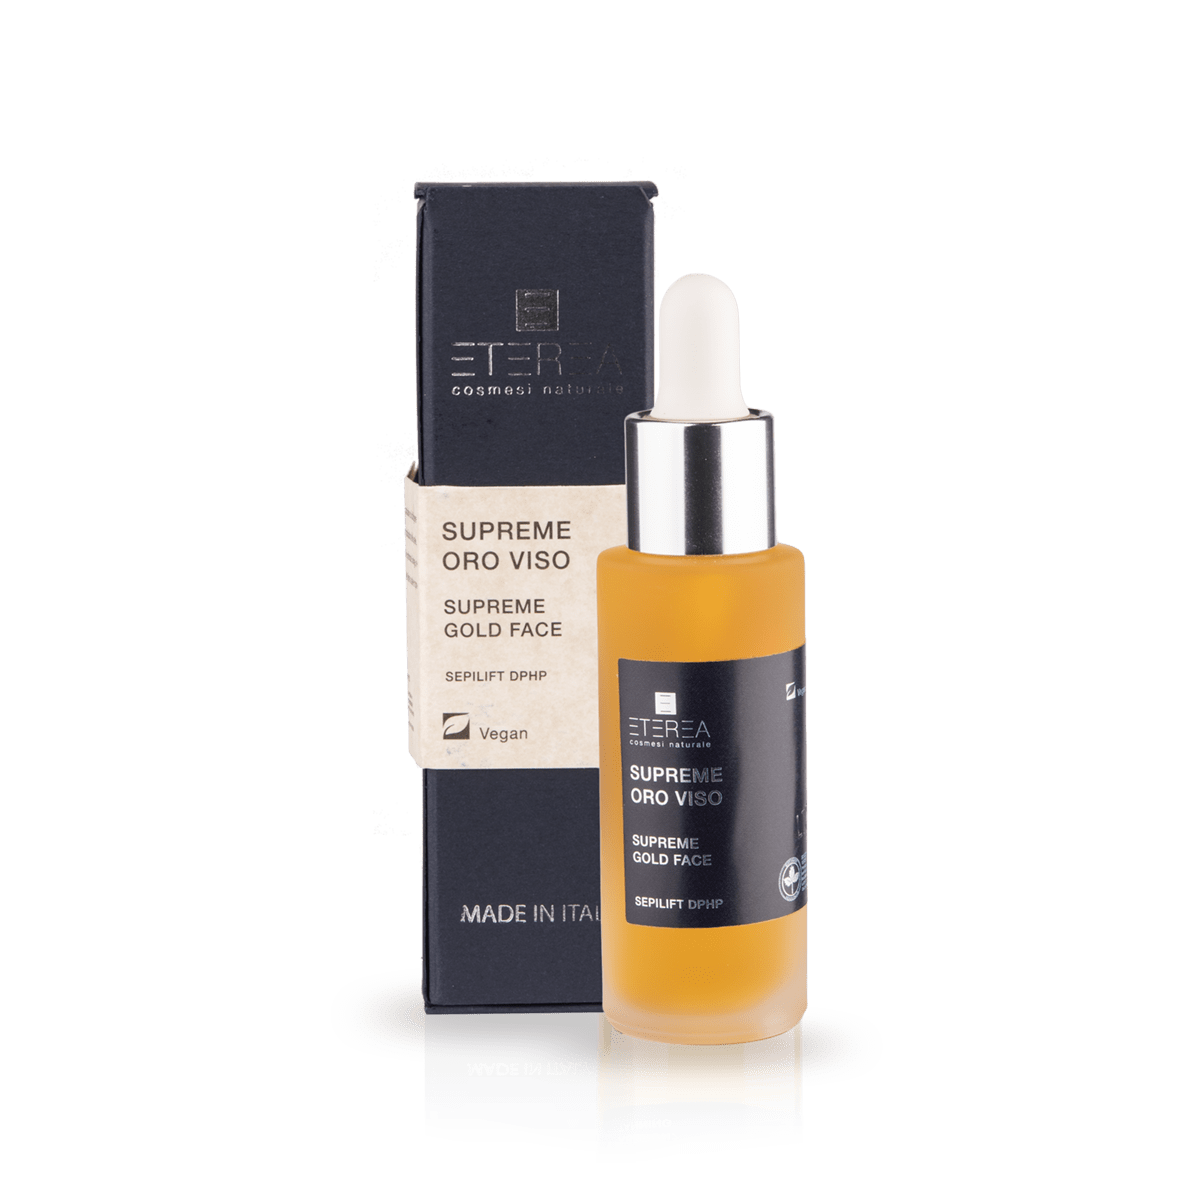 ETEREA Cosmesi Naturale Supreme Gold Face Serum - 30 ml von ETEREA Cosmesi Naturale